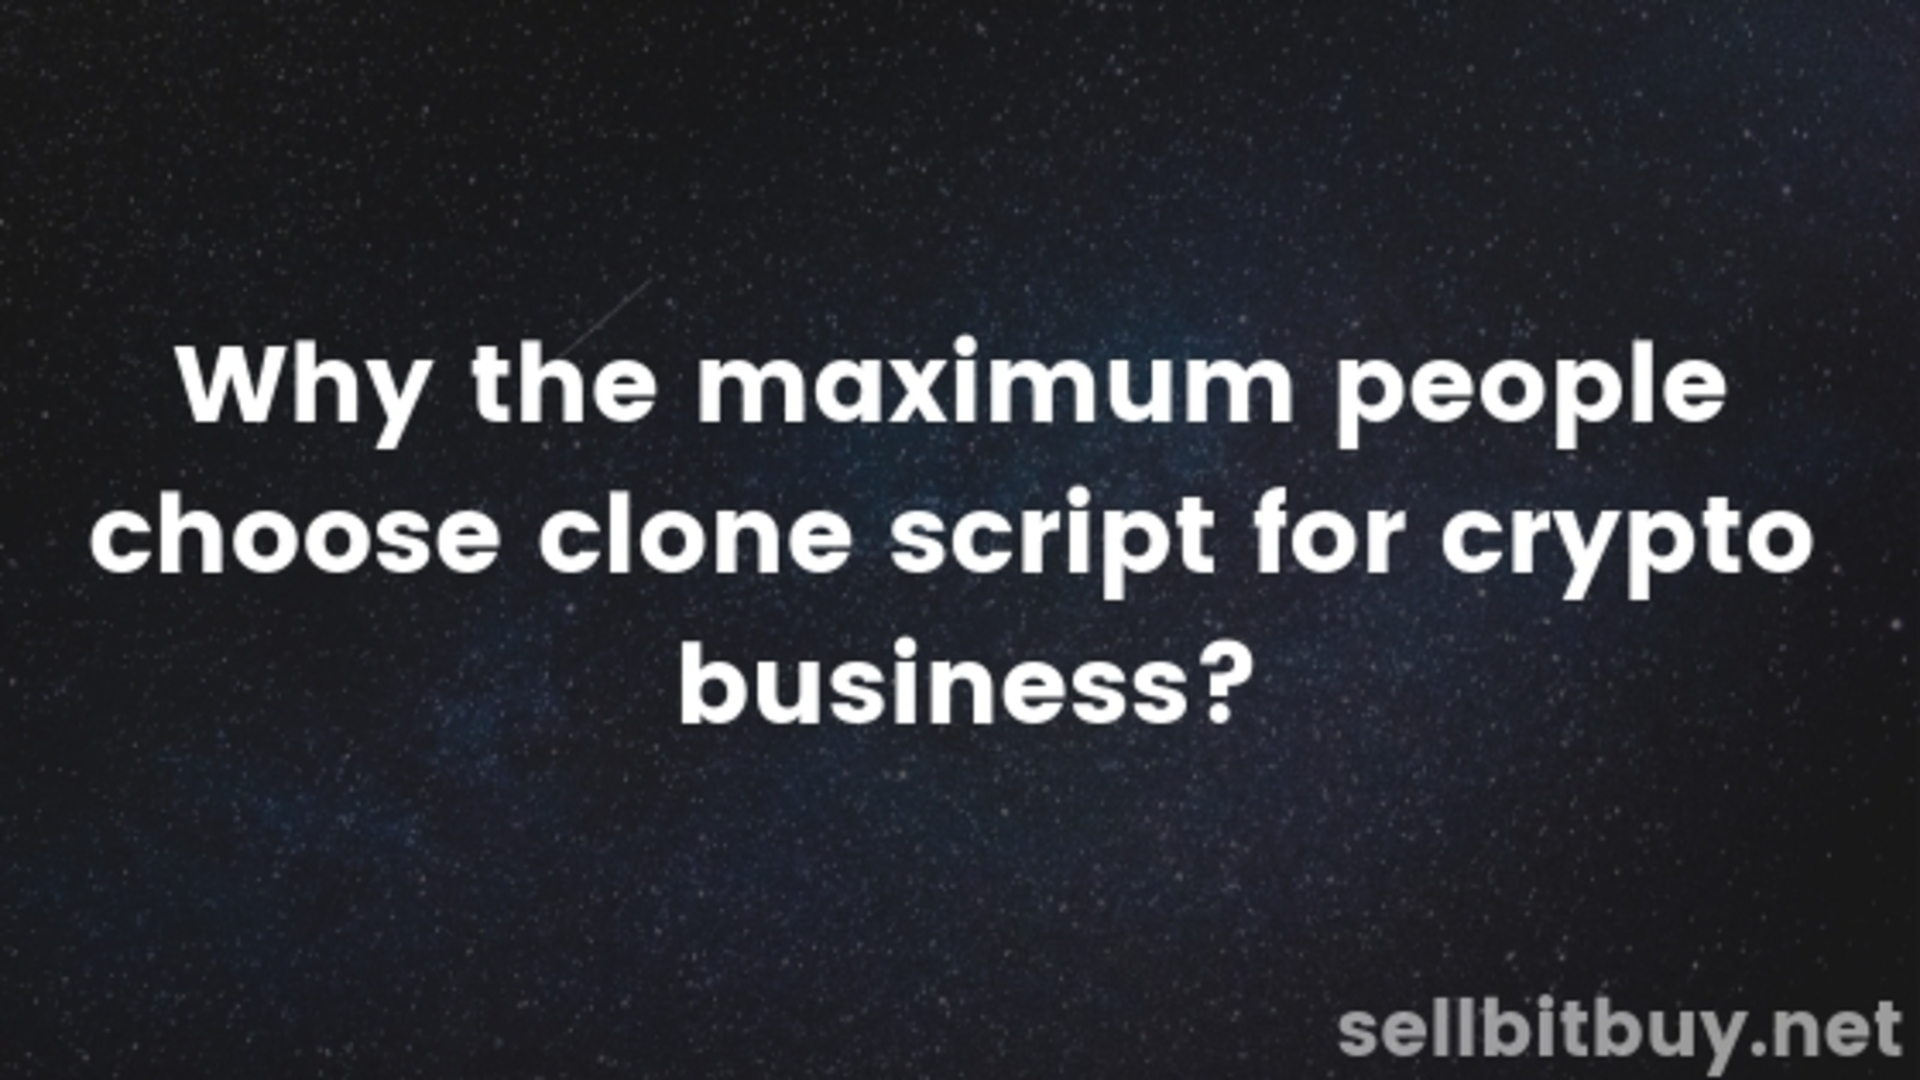 Why the maximum people choose clone script for crypto business? image